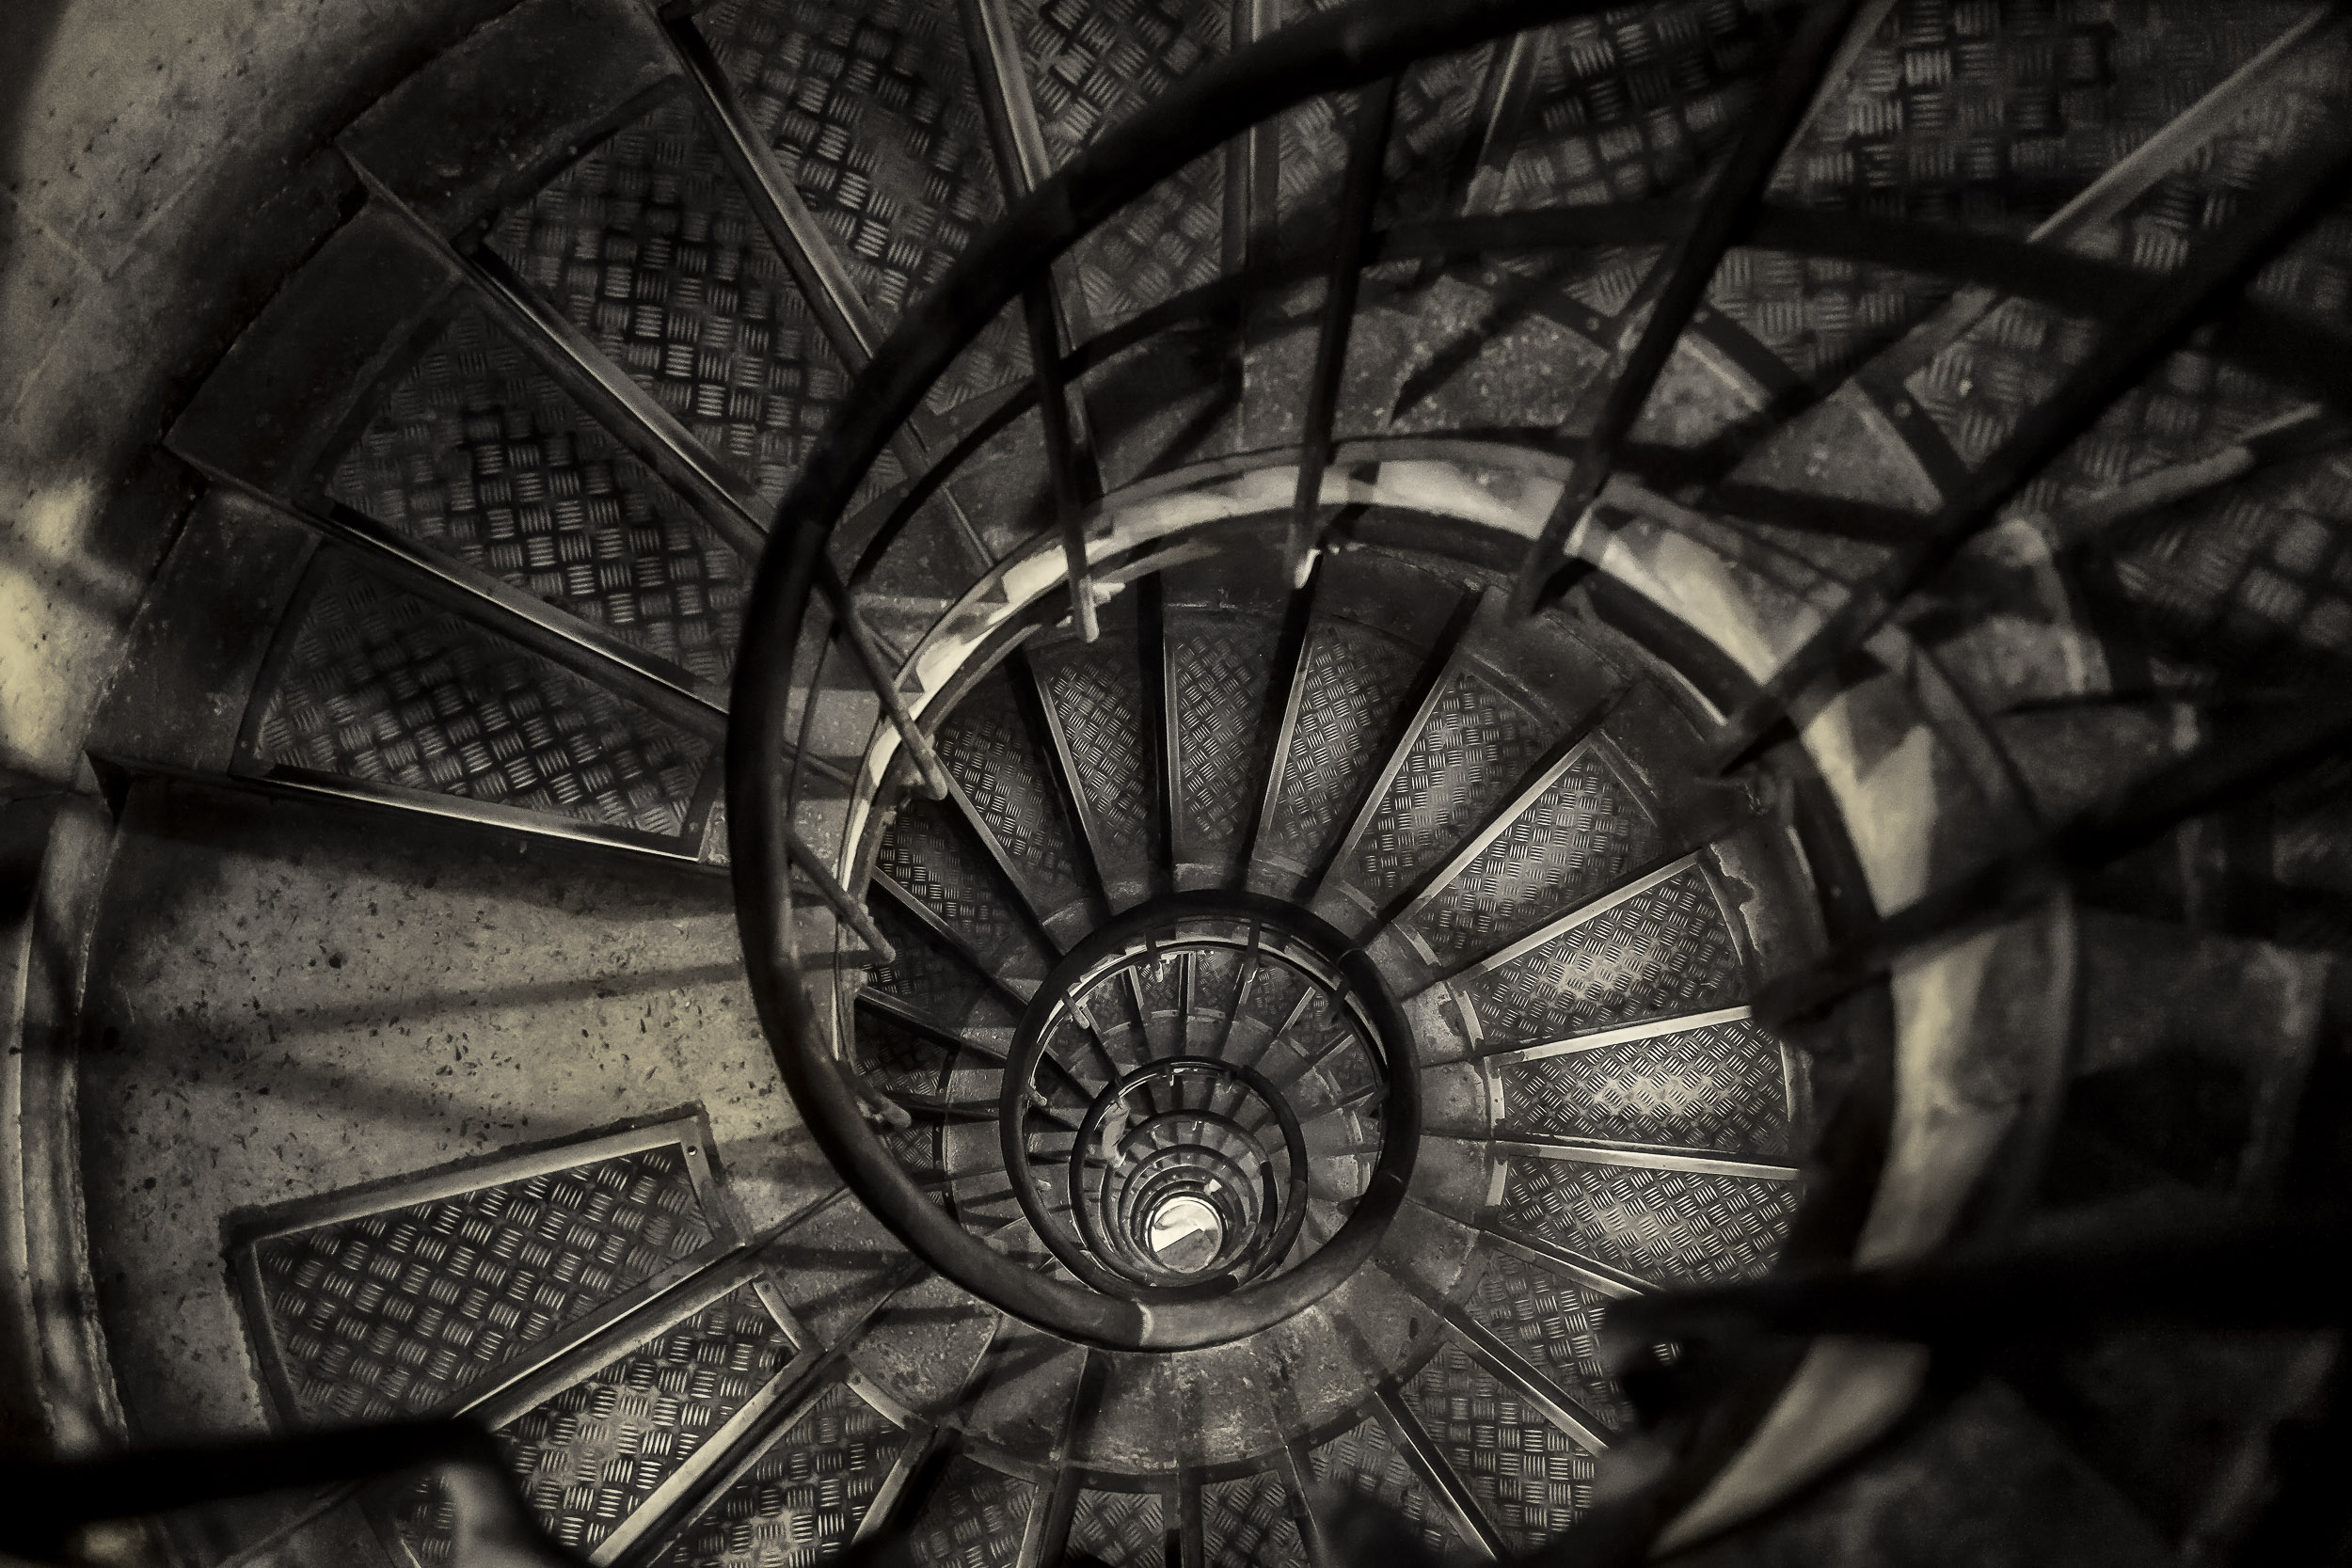 A  moody, birdseye view  looking down a  narrow stairwell  at the  Arc de Triomphe  in  Paris, France .